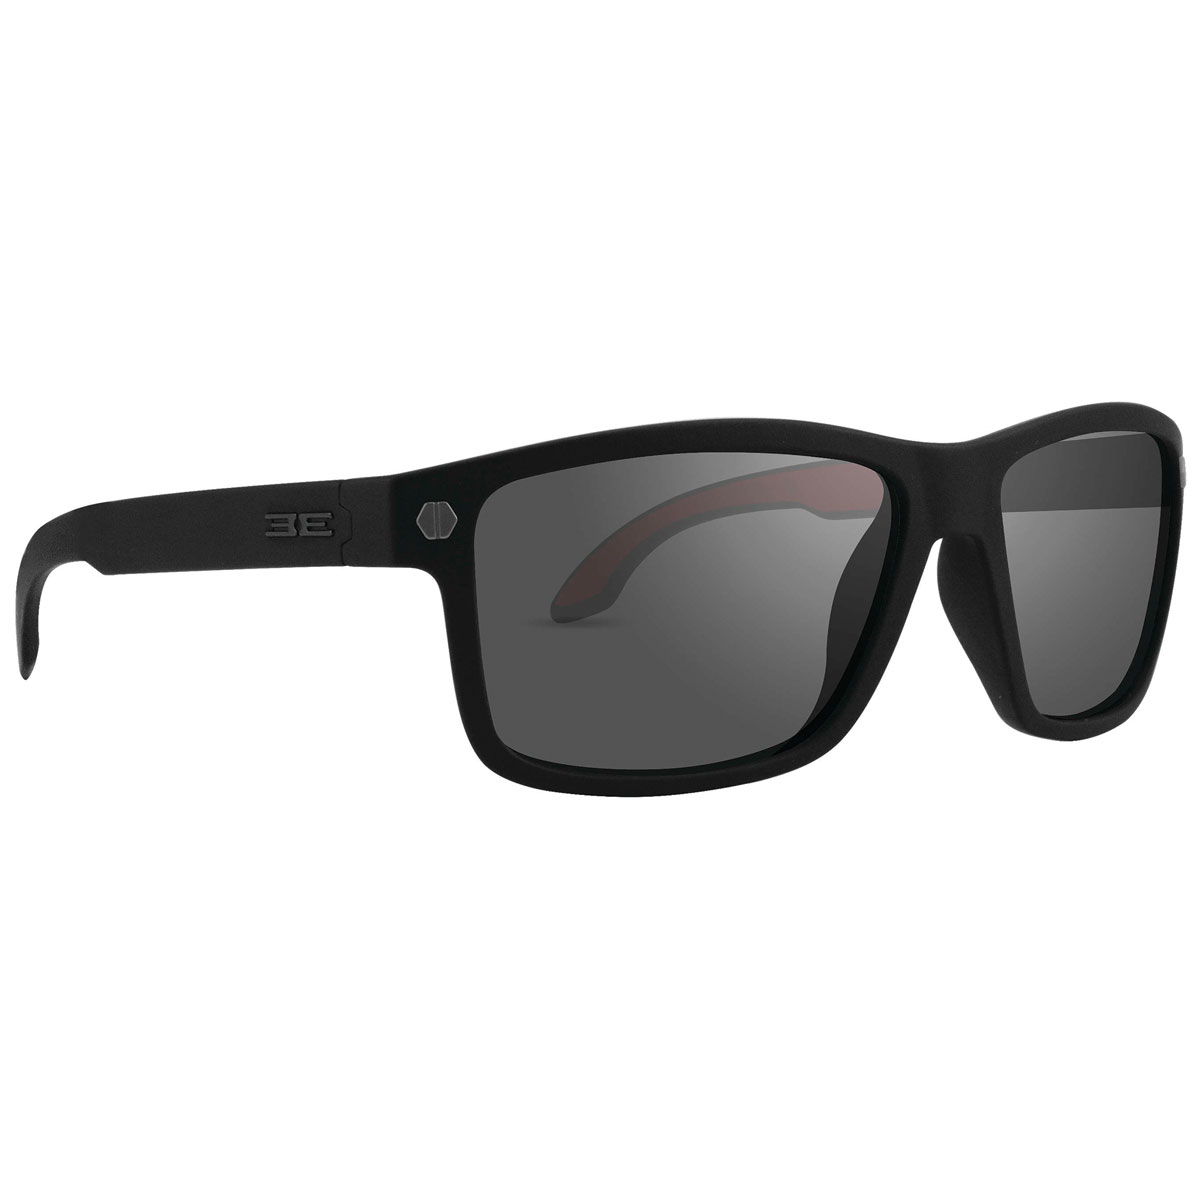 Epoch Eyewear ASR Lifestyle Sunglasses with Smoke Lens